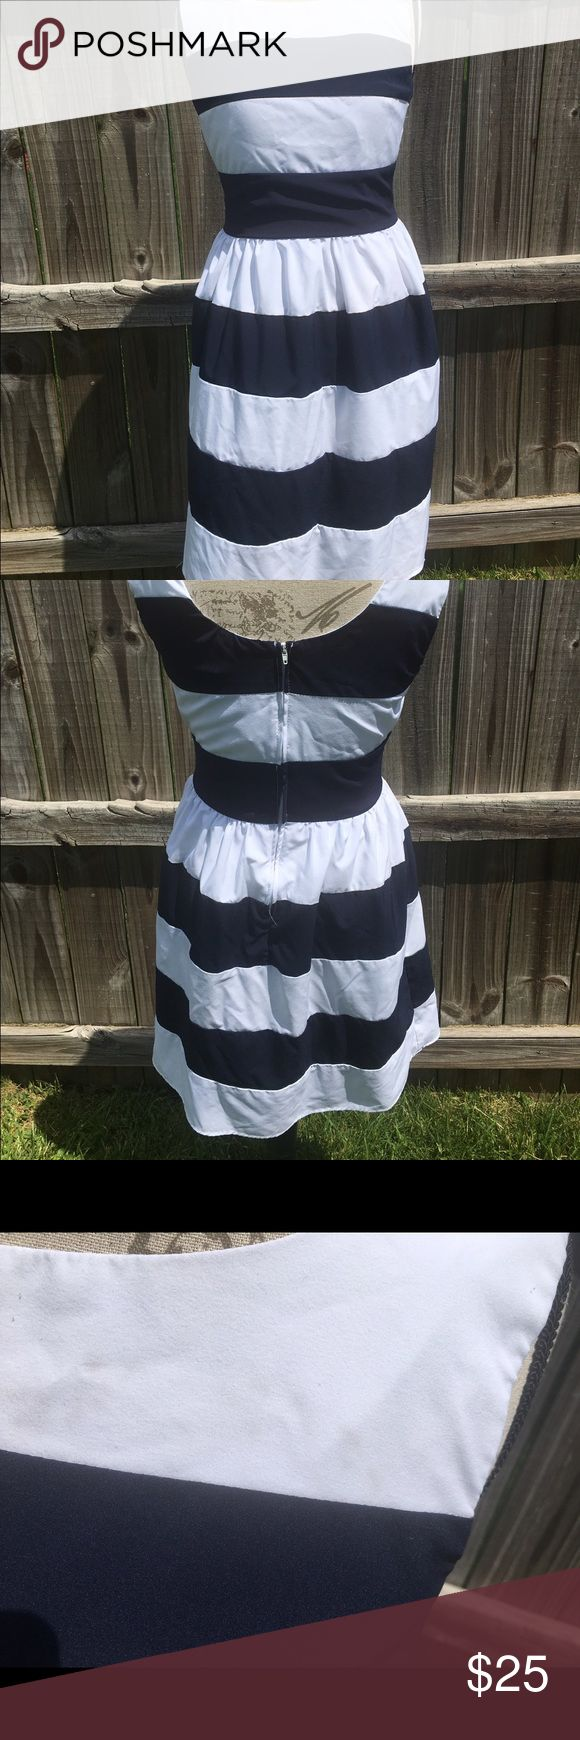 Sleeveless striped dress Lined sleeveless blue and white striped dress. Some discoloration at collar but not noticeable. Zip backed. 96% polyester and 4% spandex. Lining 100% polyester b. smart Dresses Midi